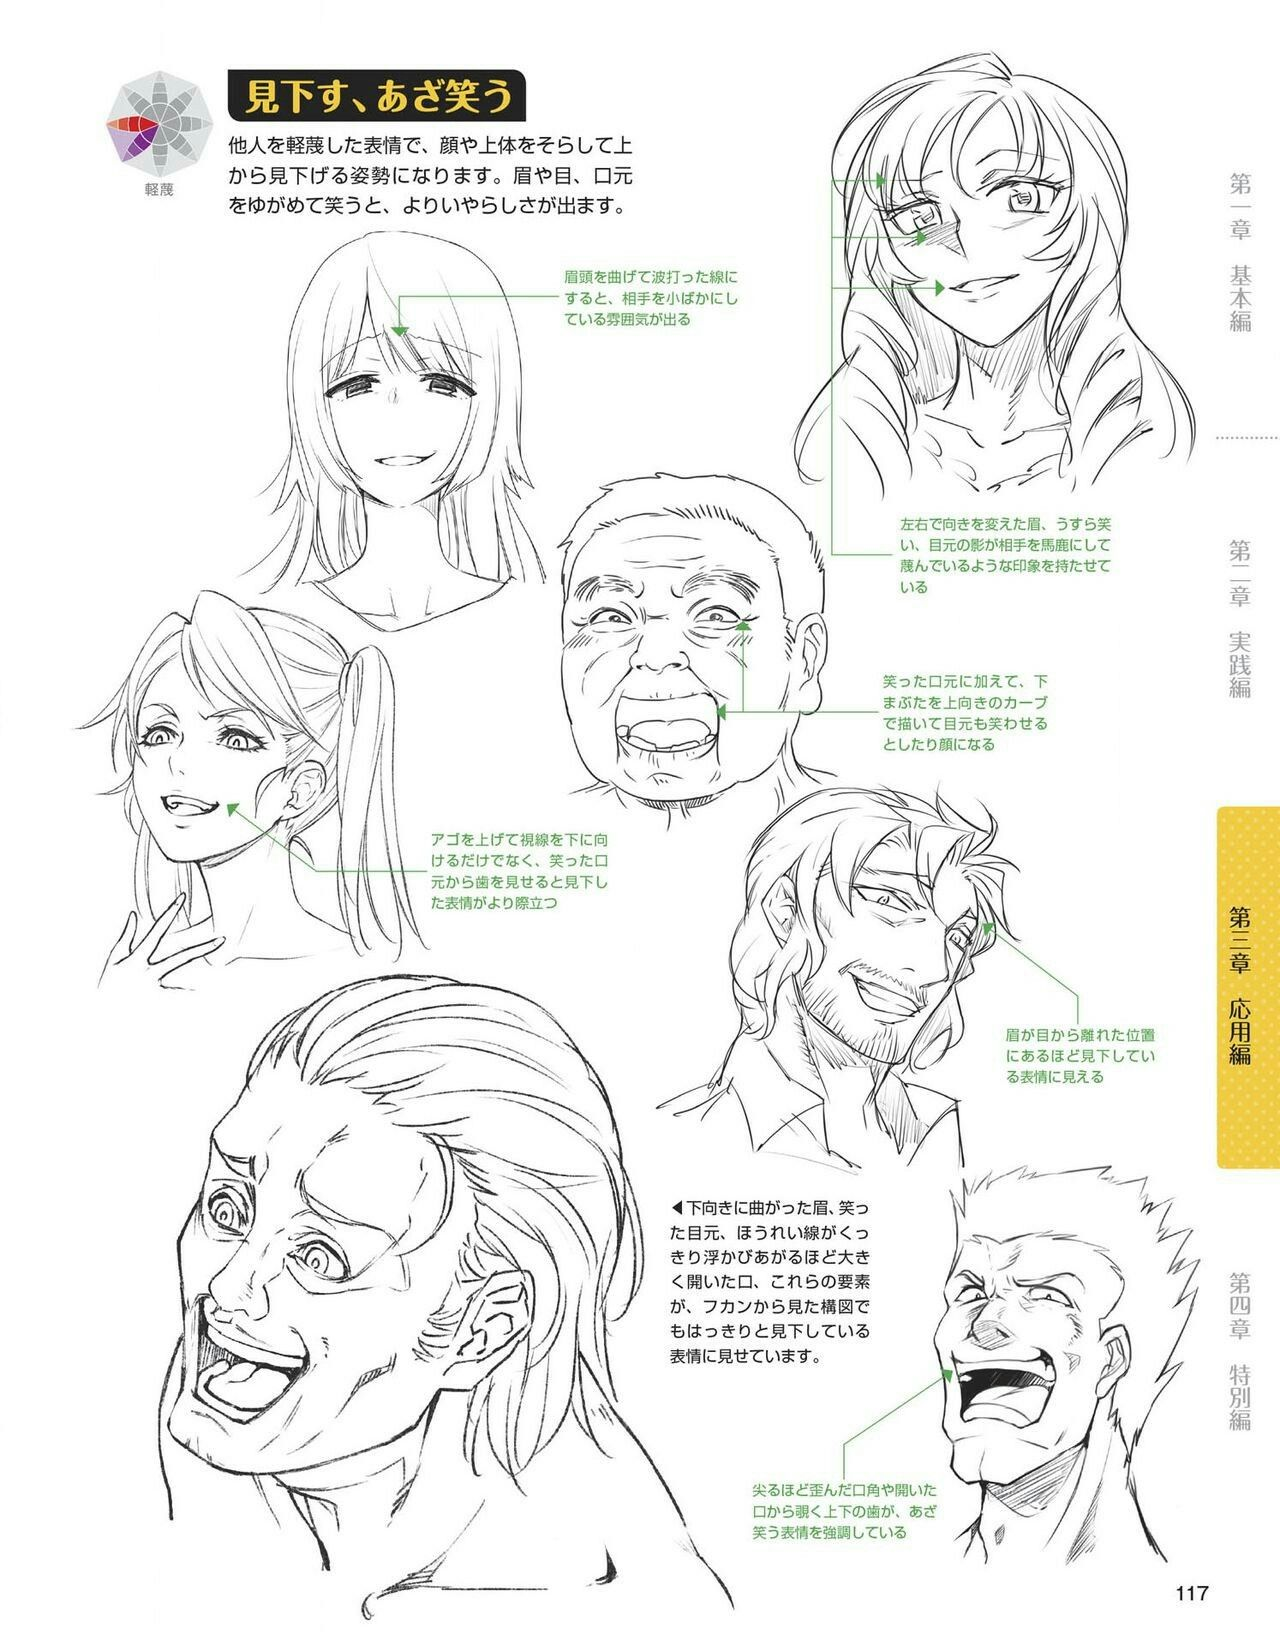 Eyebrows laughing Manga drawing tutorials, Face drawing